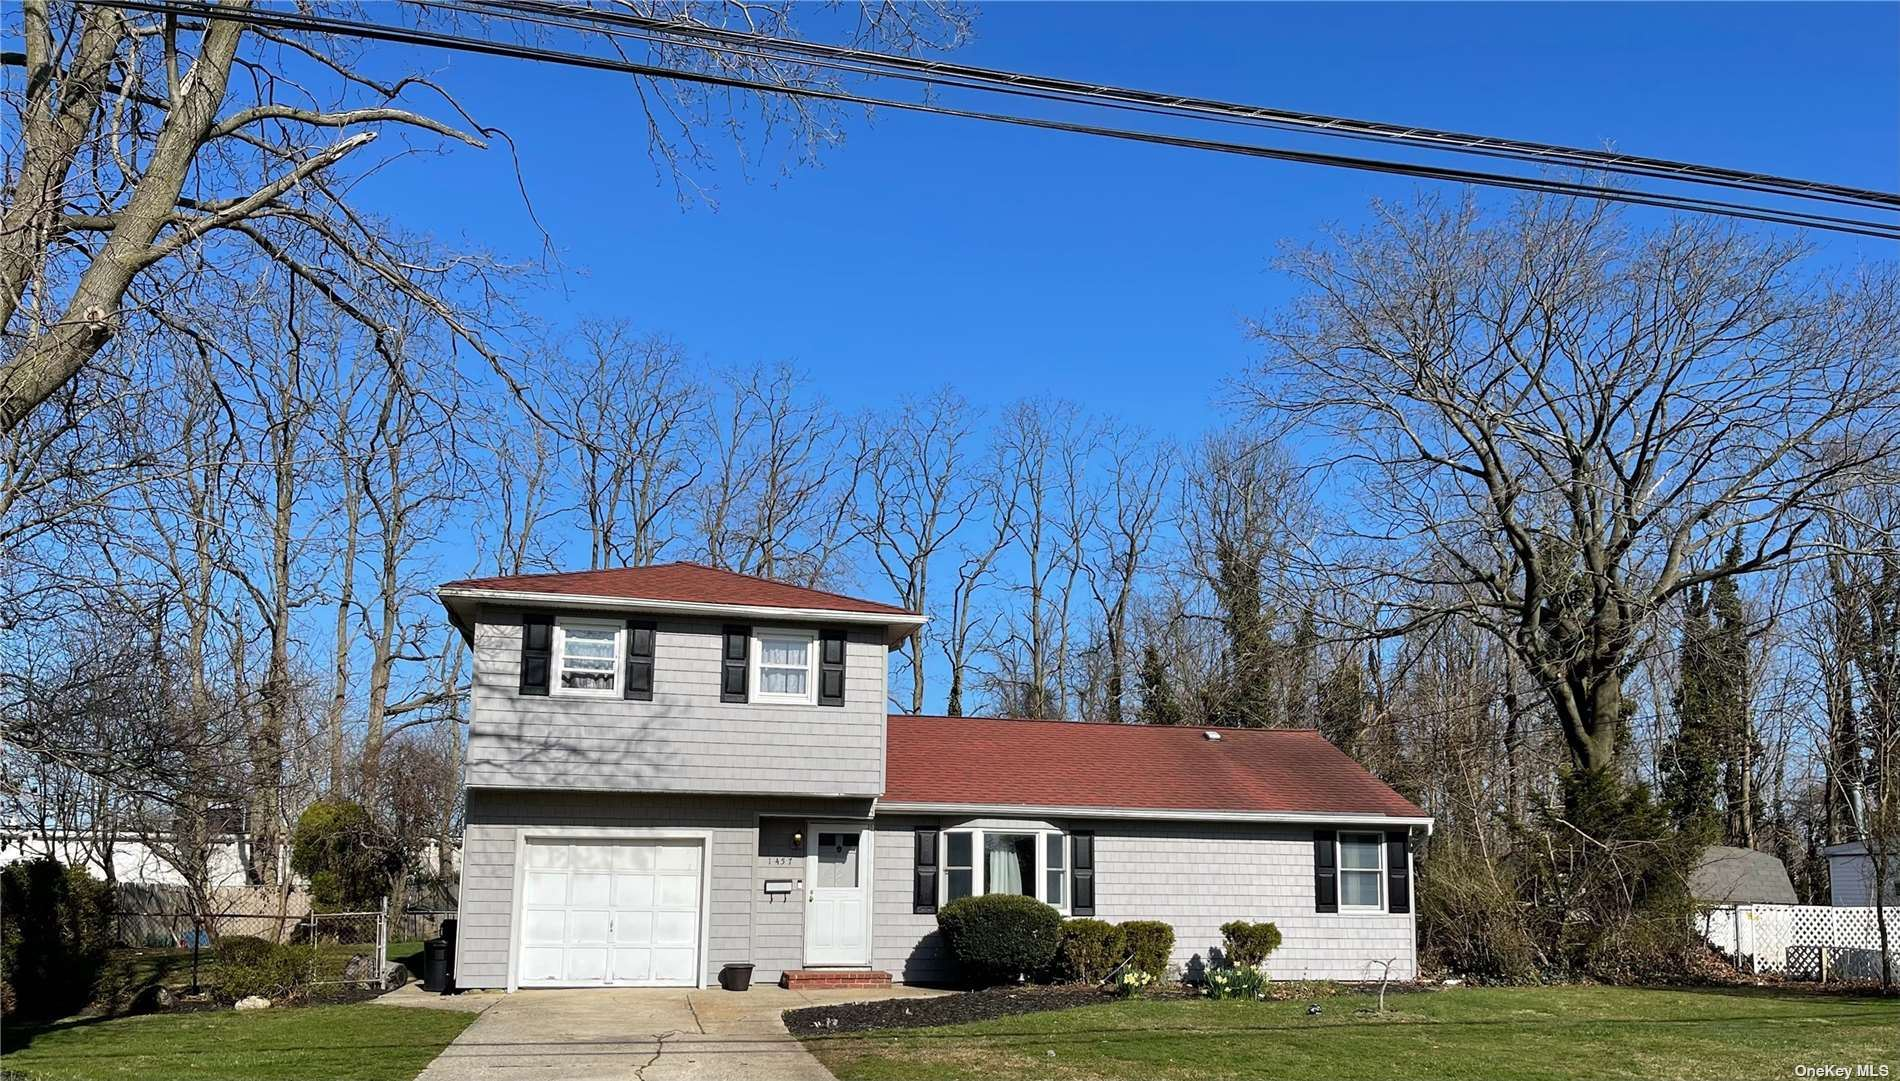 1457 Lombardy Blvd, Bay Shore, NY 11706 - MLS#: 3300758